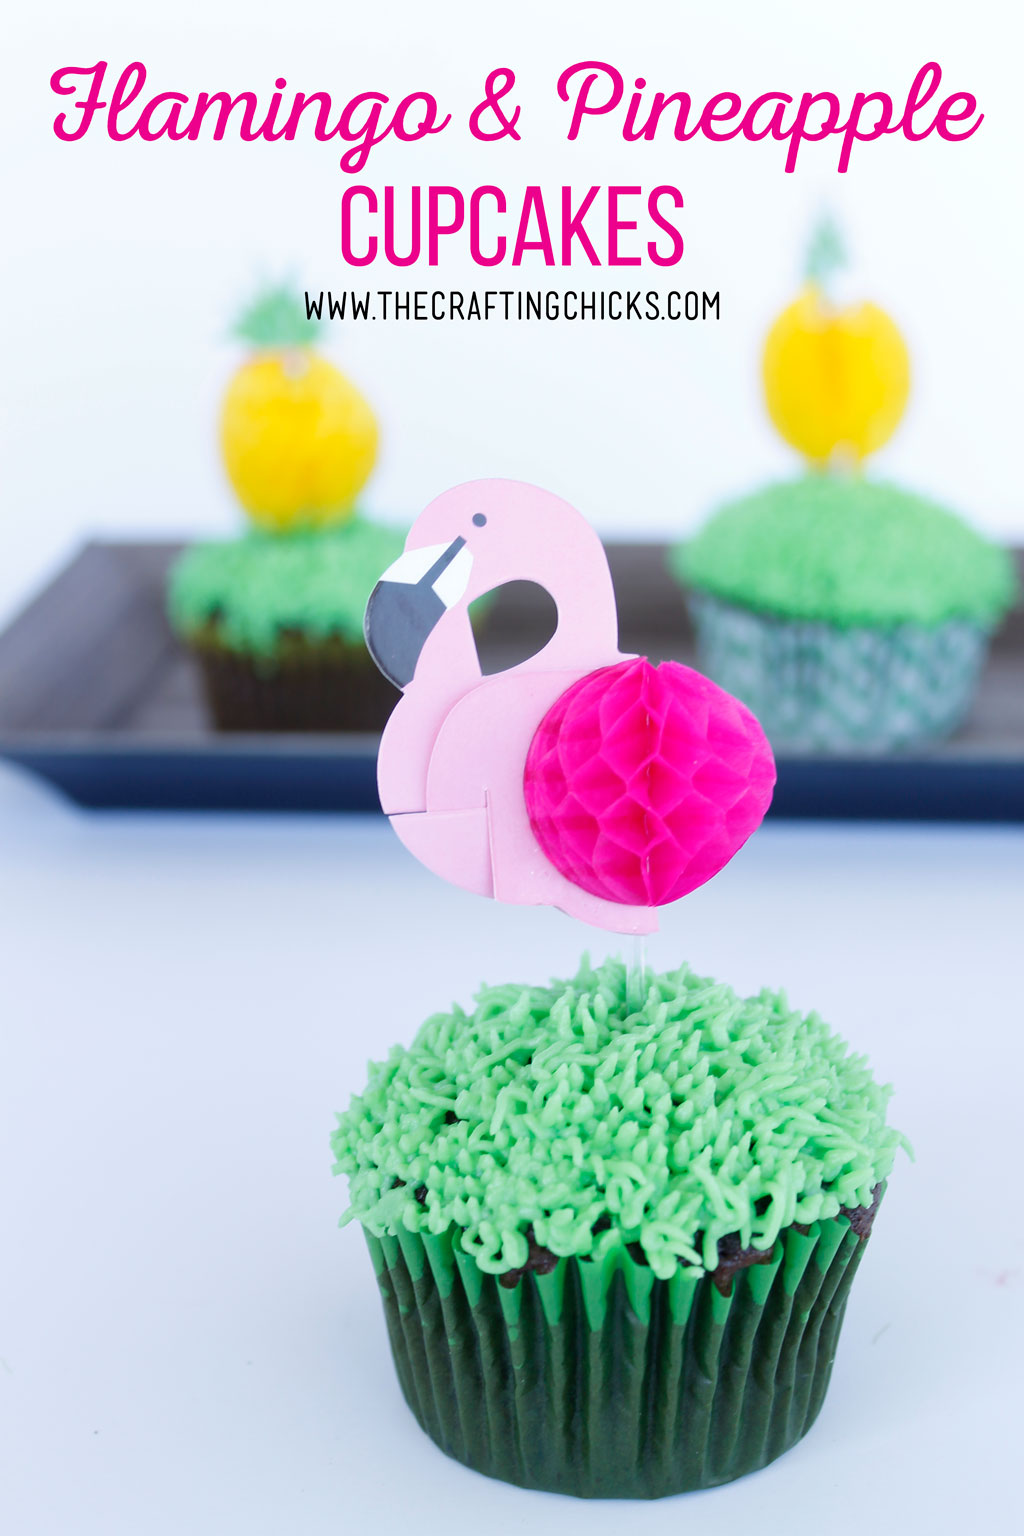 Flamingo and Pineapple Cupcakes